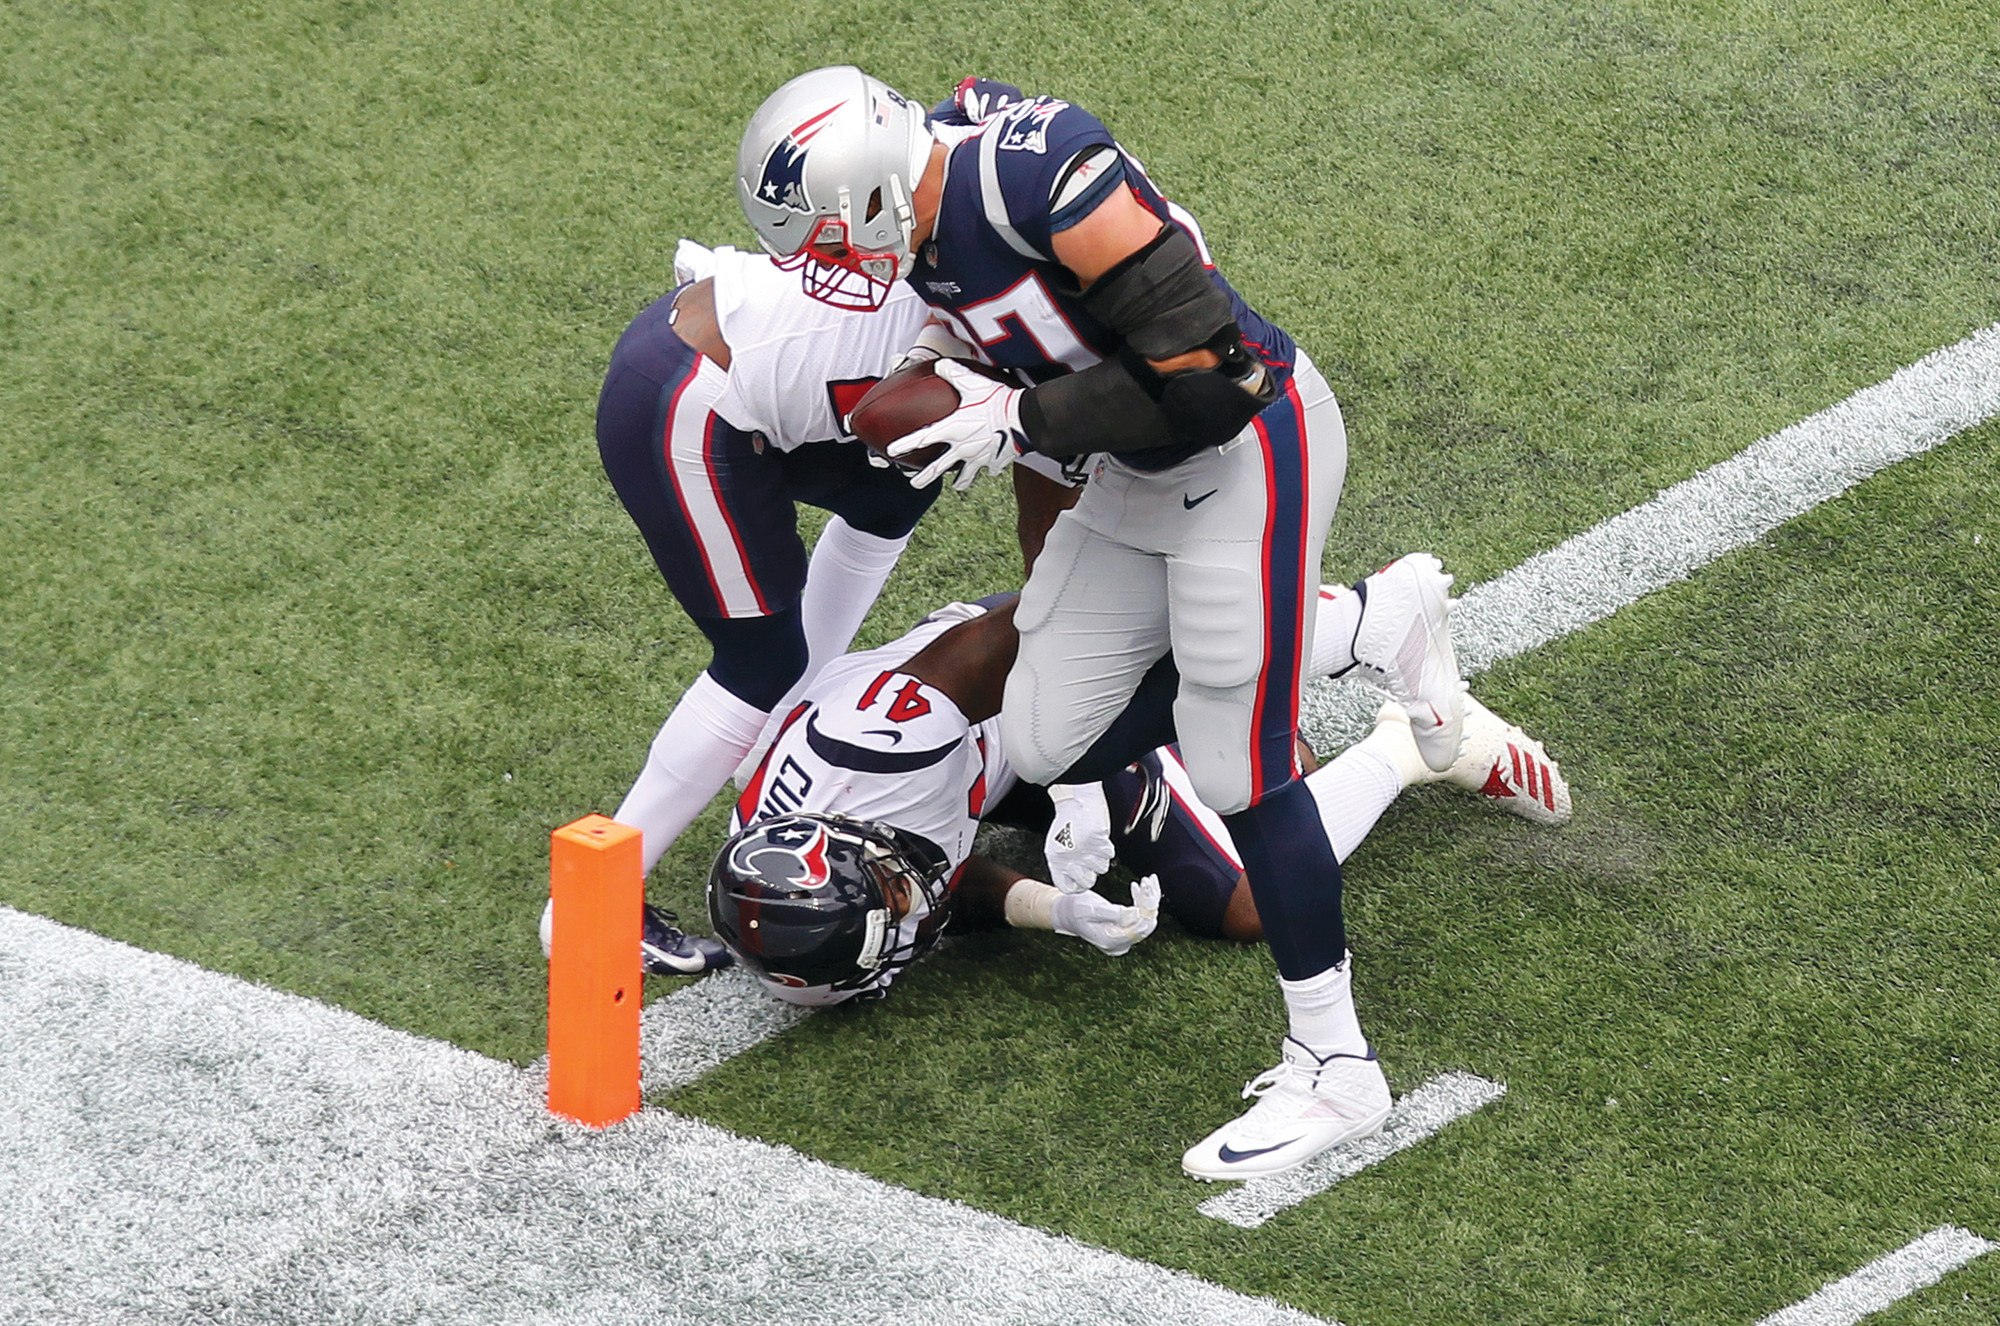 New England tight end Rob Gronkowski scores a touchdown past Houston Texans defensive Back Kareem Jackson, rear, and linebacker ZachCunningham (41) during the first half of their game Sunday in Foxborough, Massachusetts.